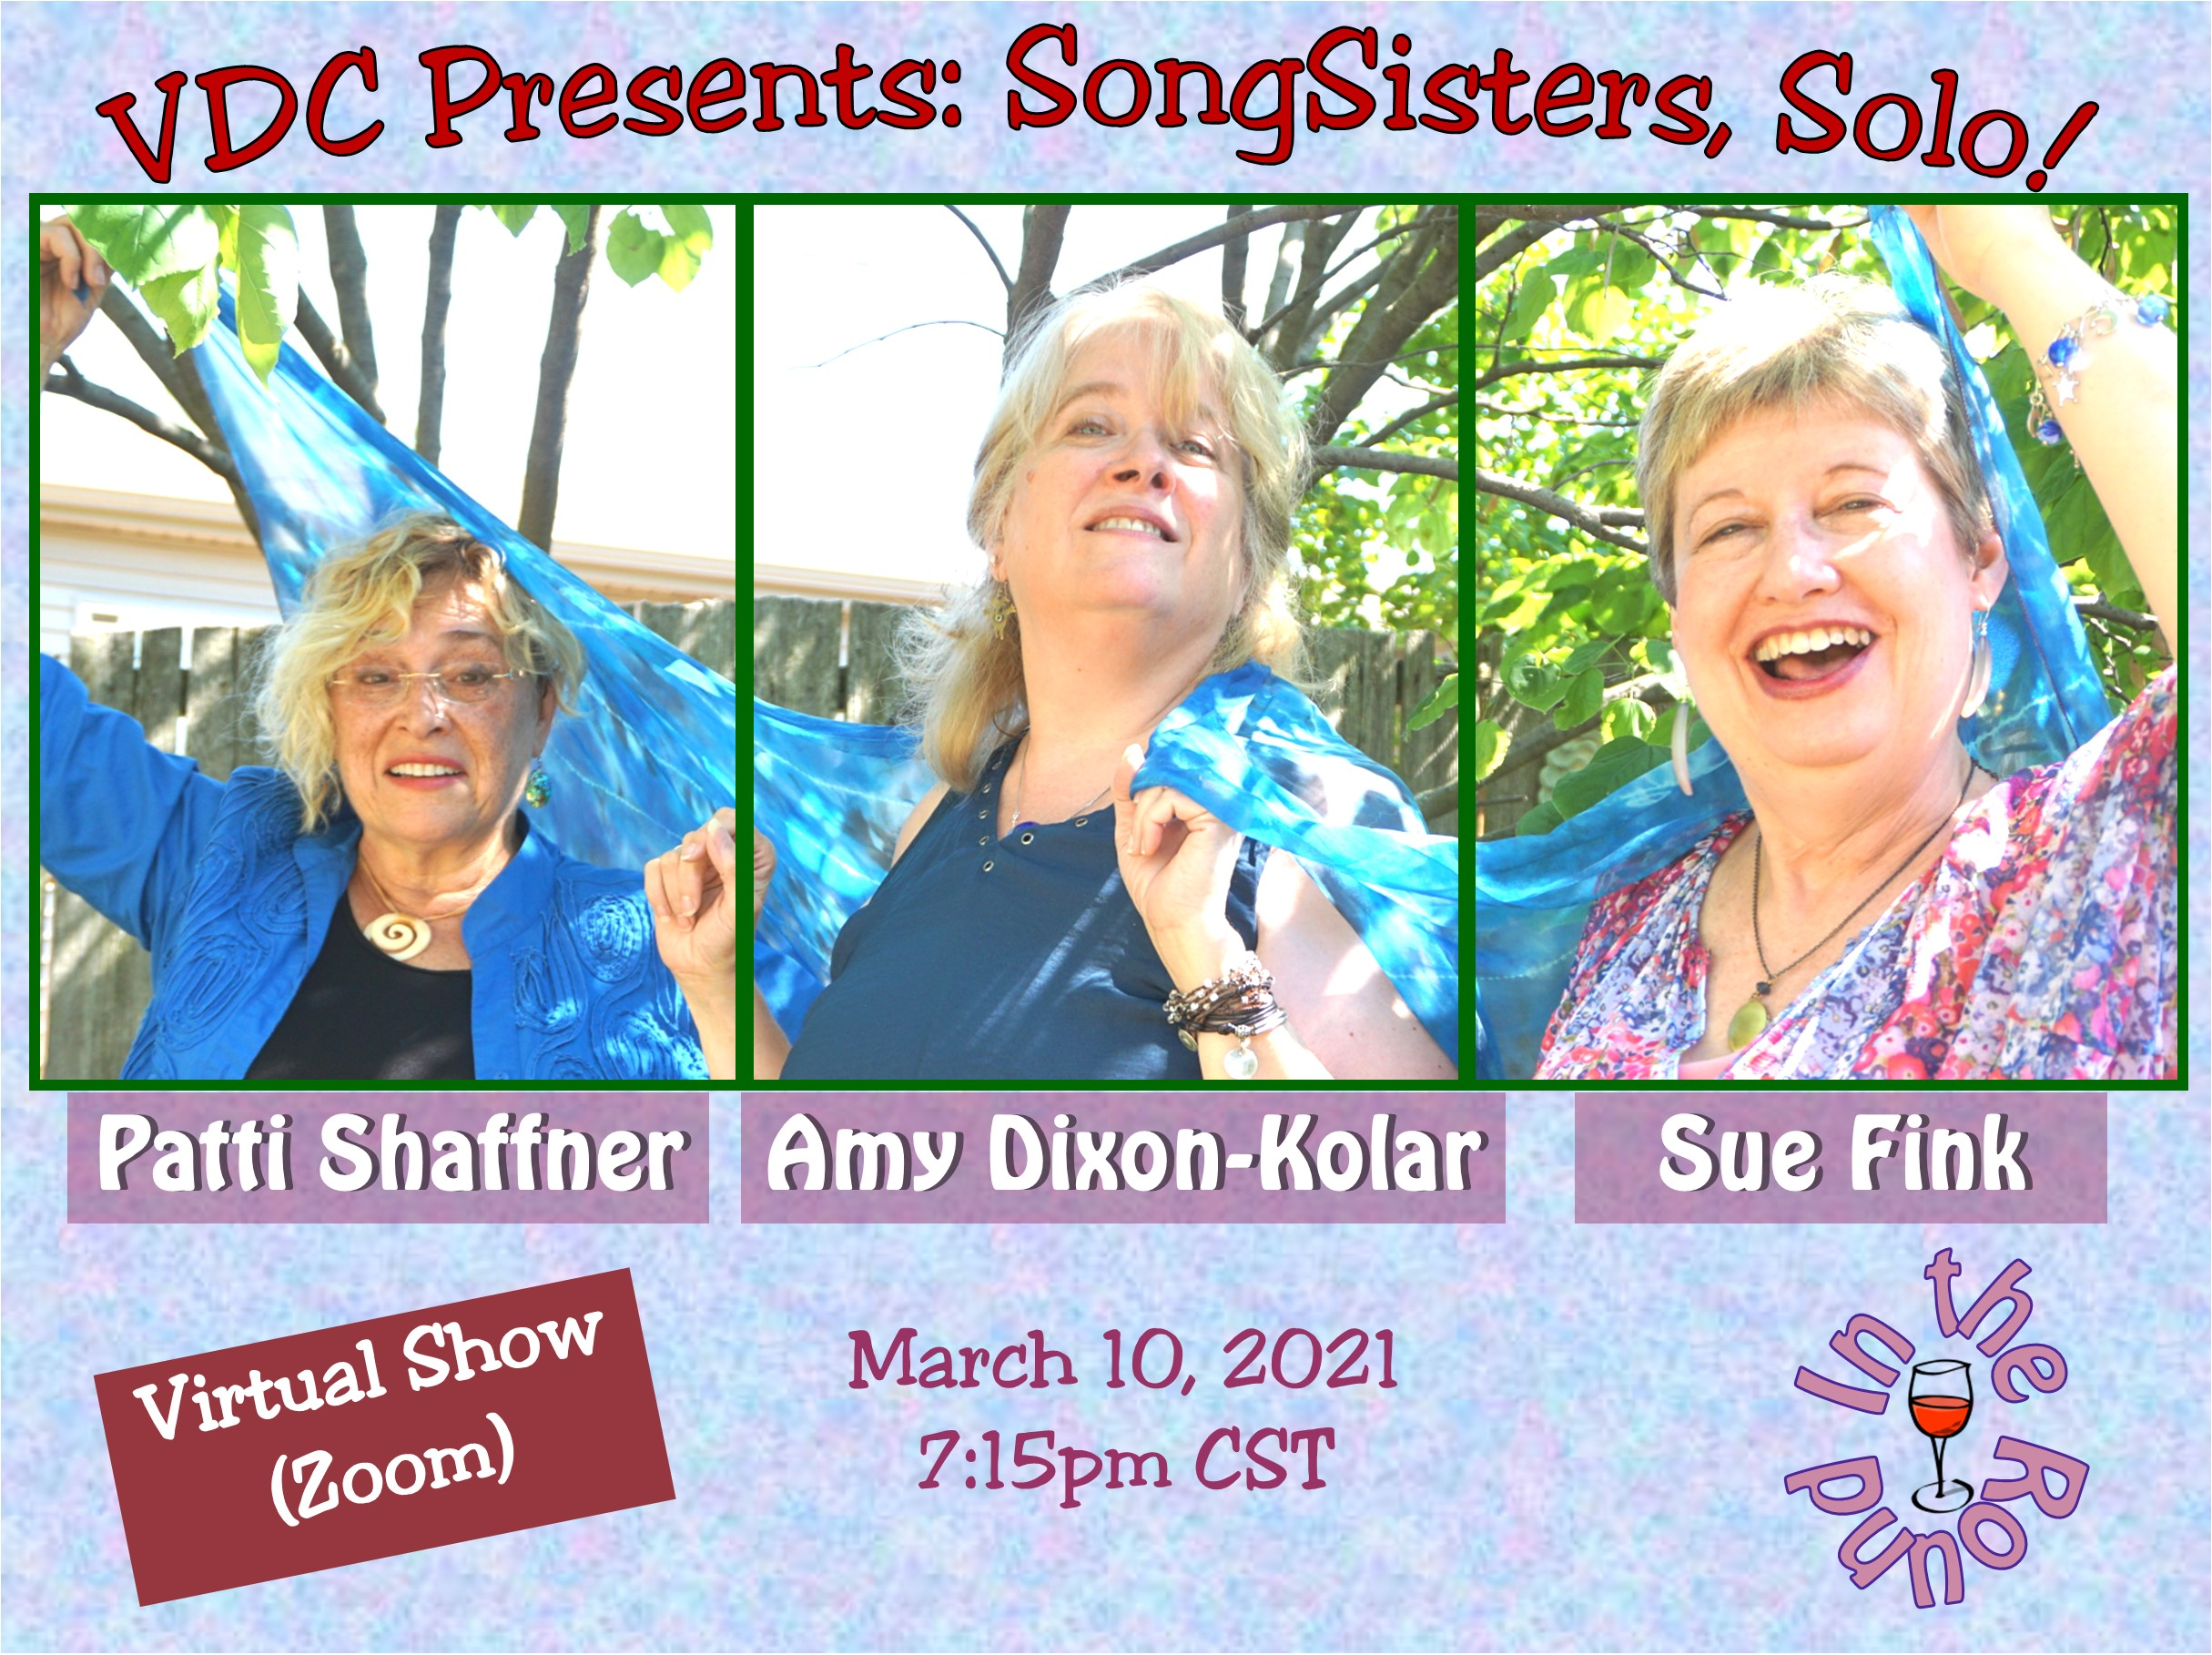 Virtual Dream Café Presents:  SongSisters, Solo!  Patti Shaffner, Amy Dixon-Kolar, and Sue Fink In-the-Round